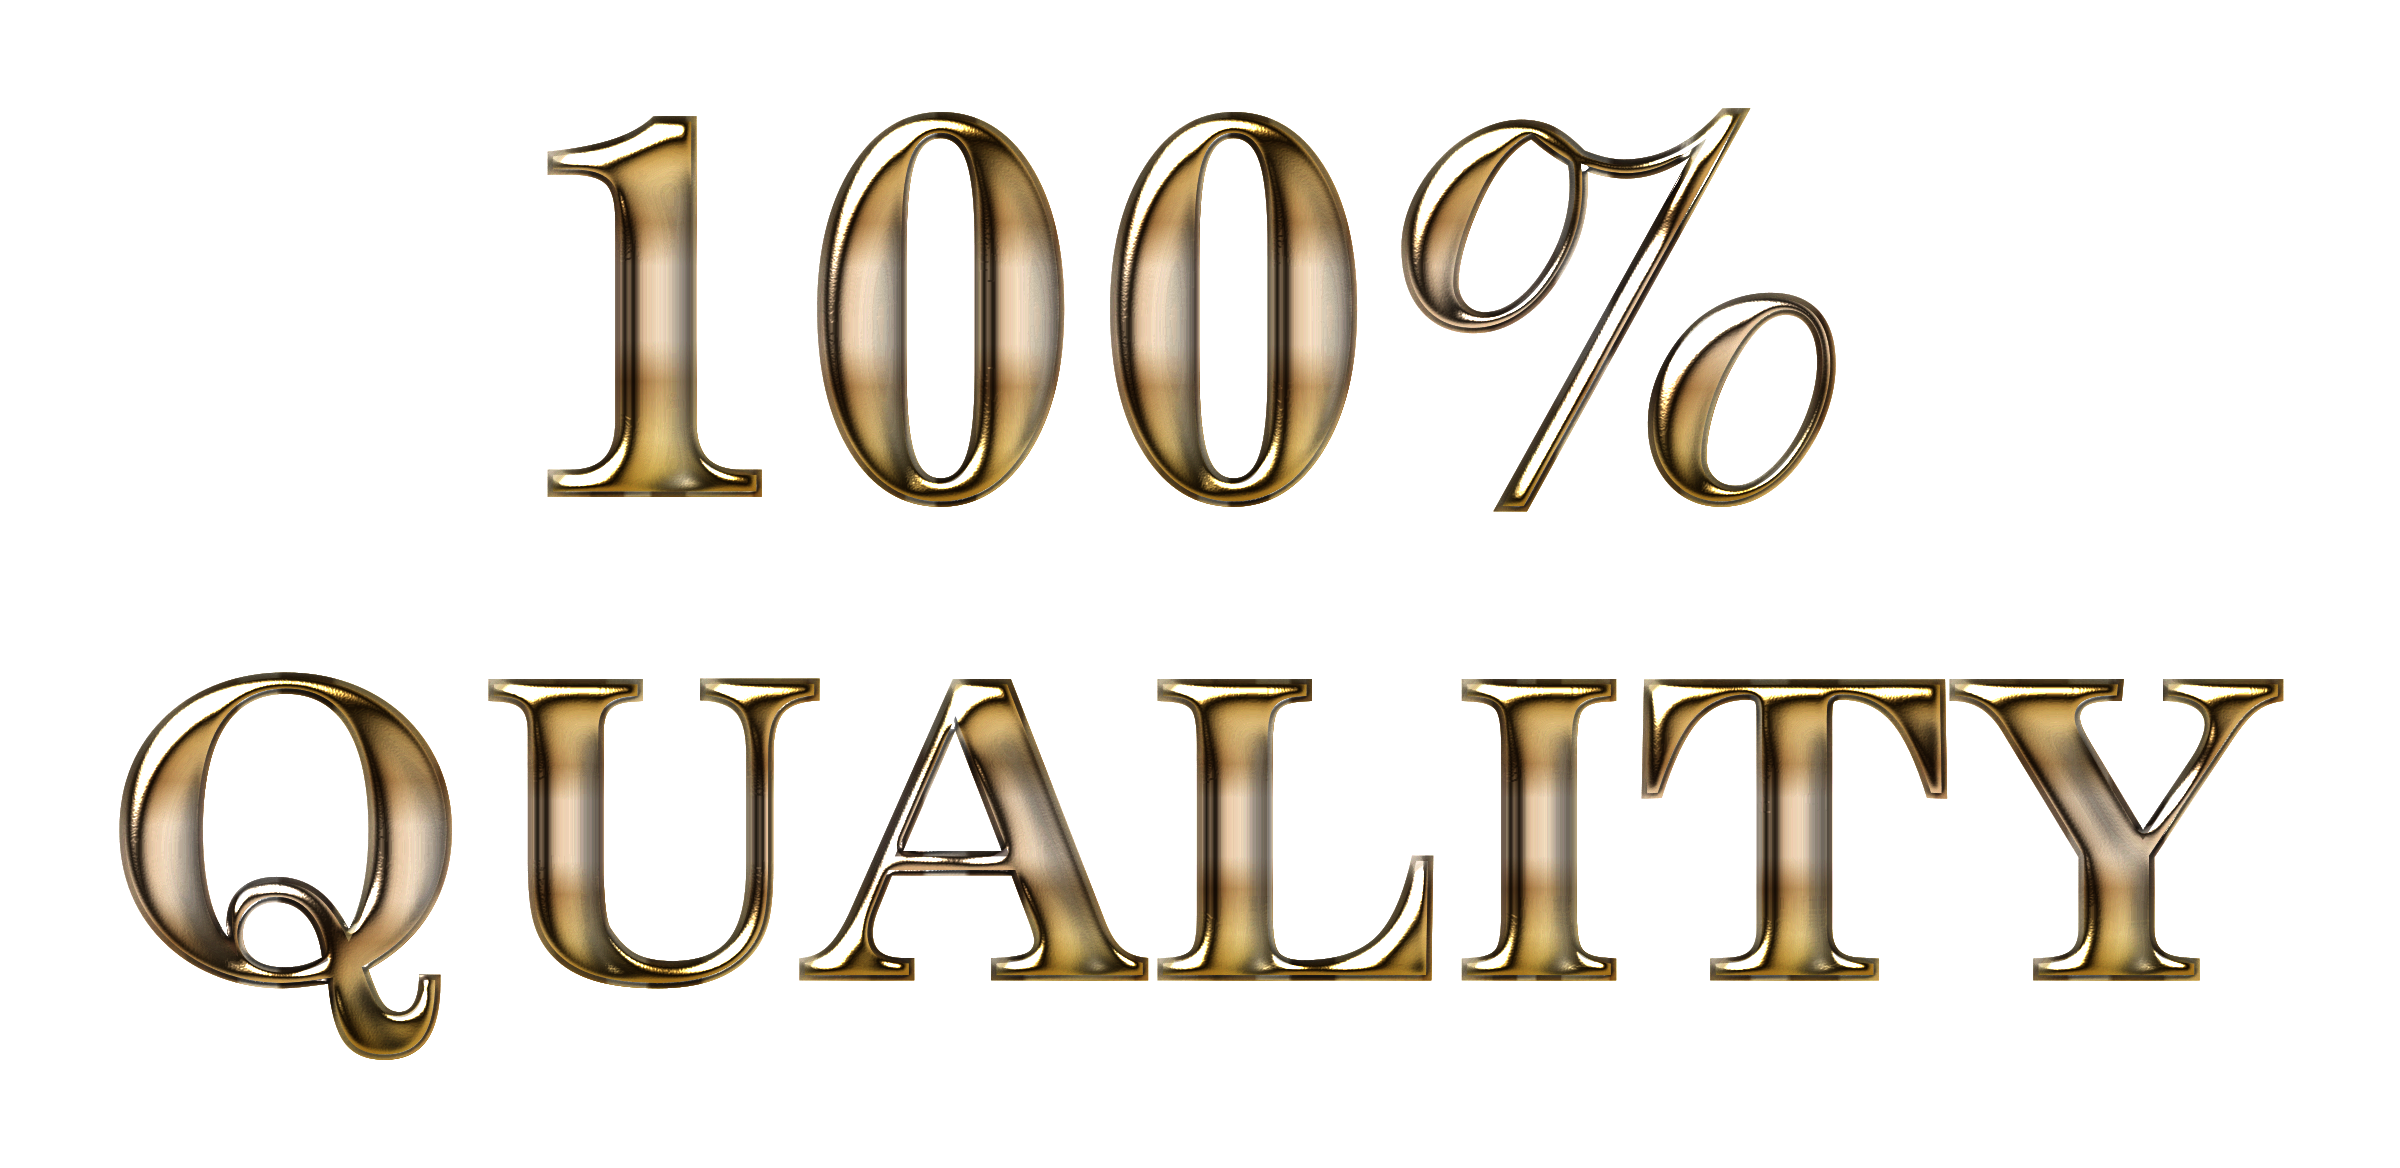 100 Percent Quality Typography Enhanced 2 No Background by GDJ